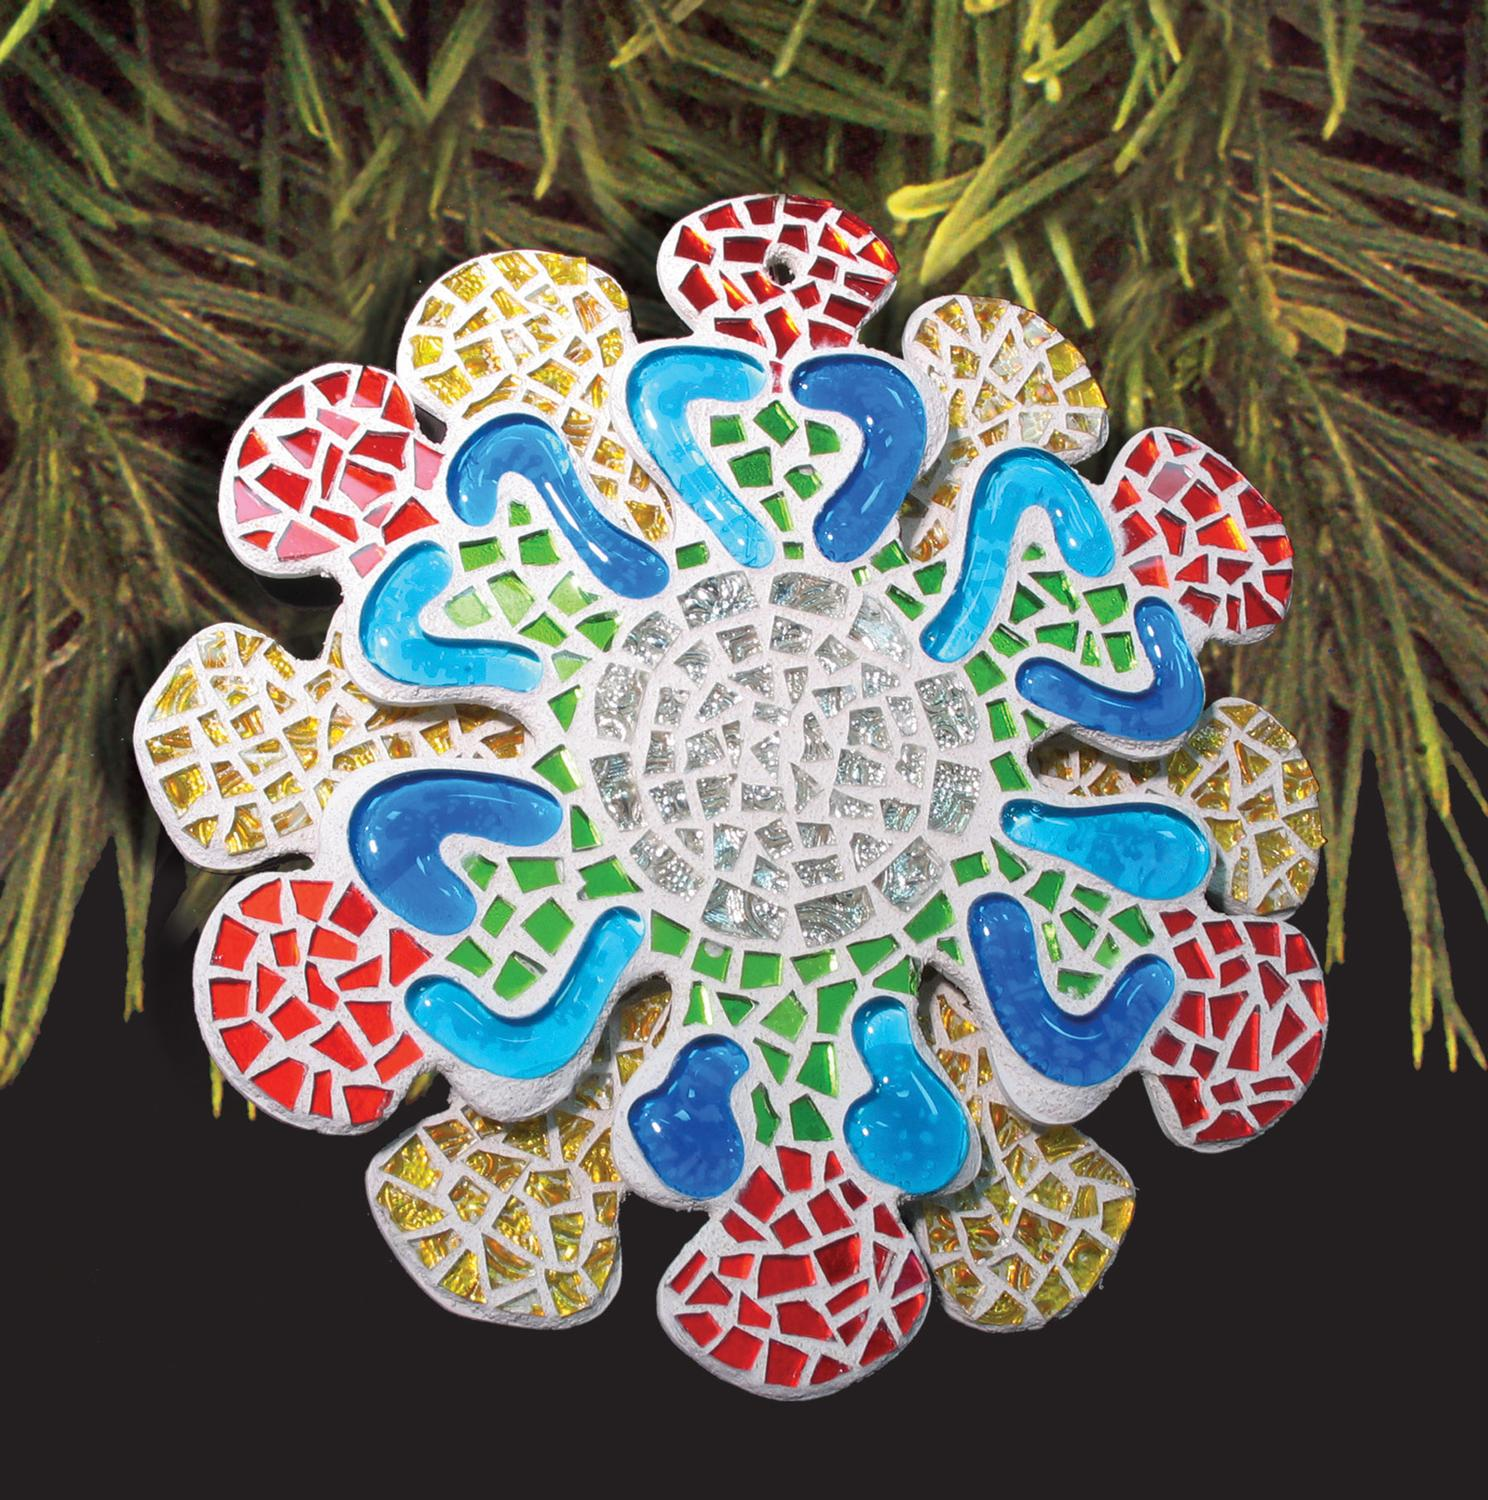 Free Holiday Ornament Project Guide